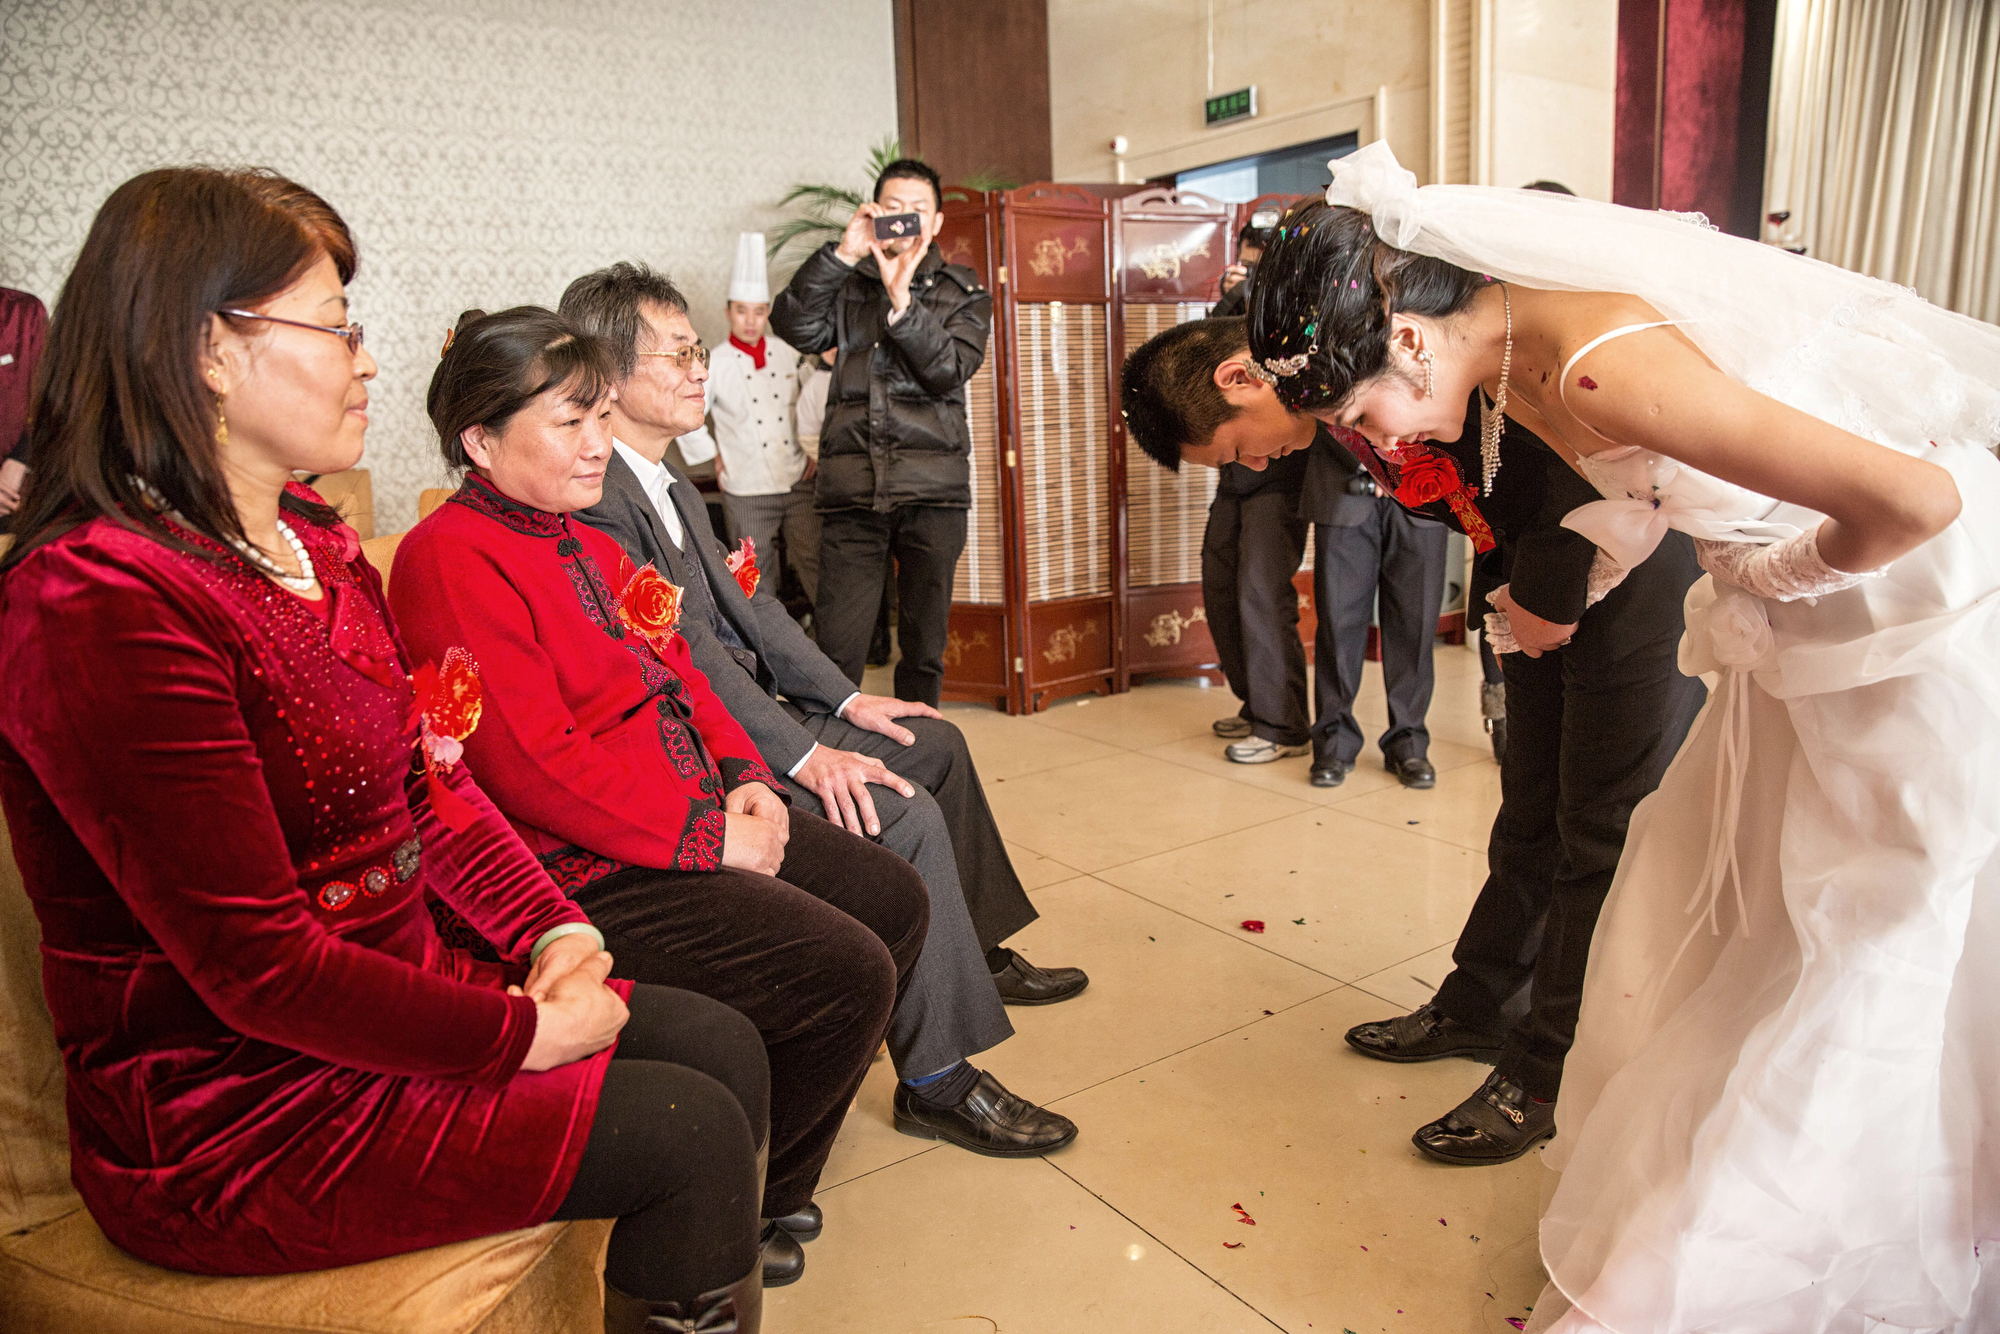 The couple bows before their parents and offers them tea, as is traditional in Chinese weddings.